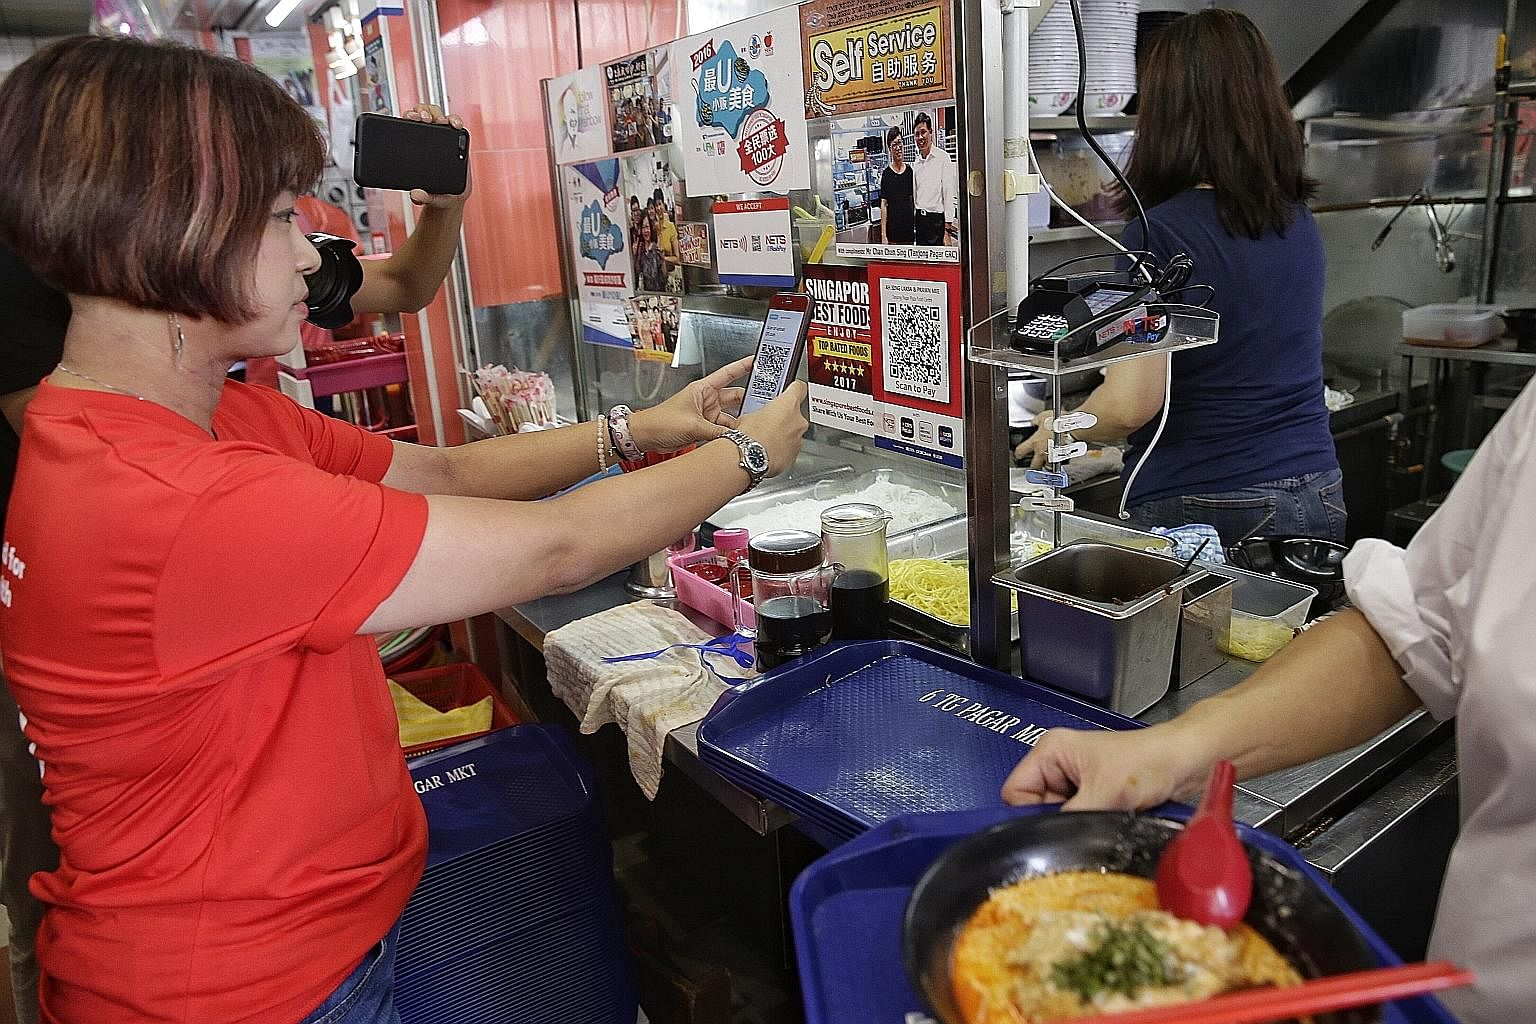 A customer scanning a QR code to pay for her meal at Tanjong Pagar Plaza Market and Food Centre. The tie-up between Nets and the hawker centre allows cashless payments at close to 50 stalls.